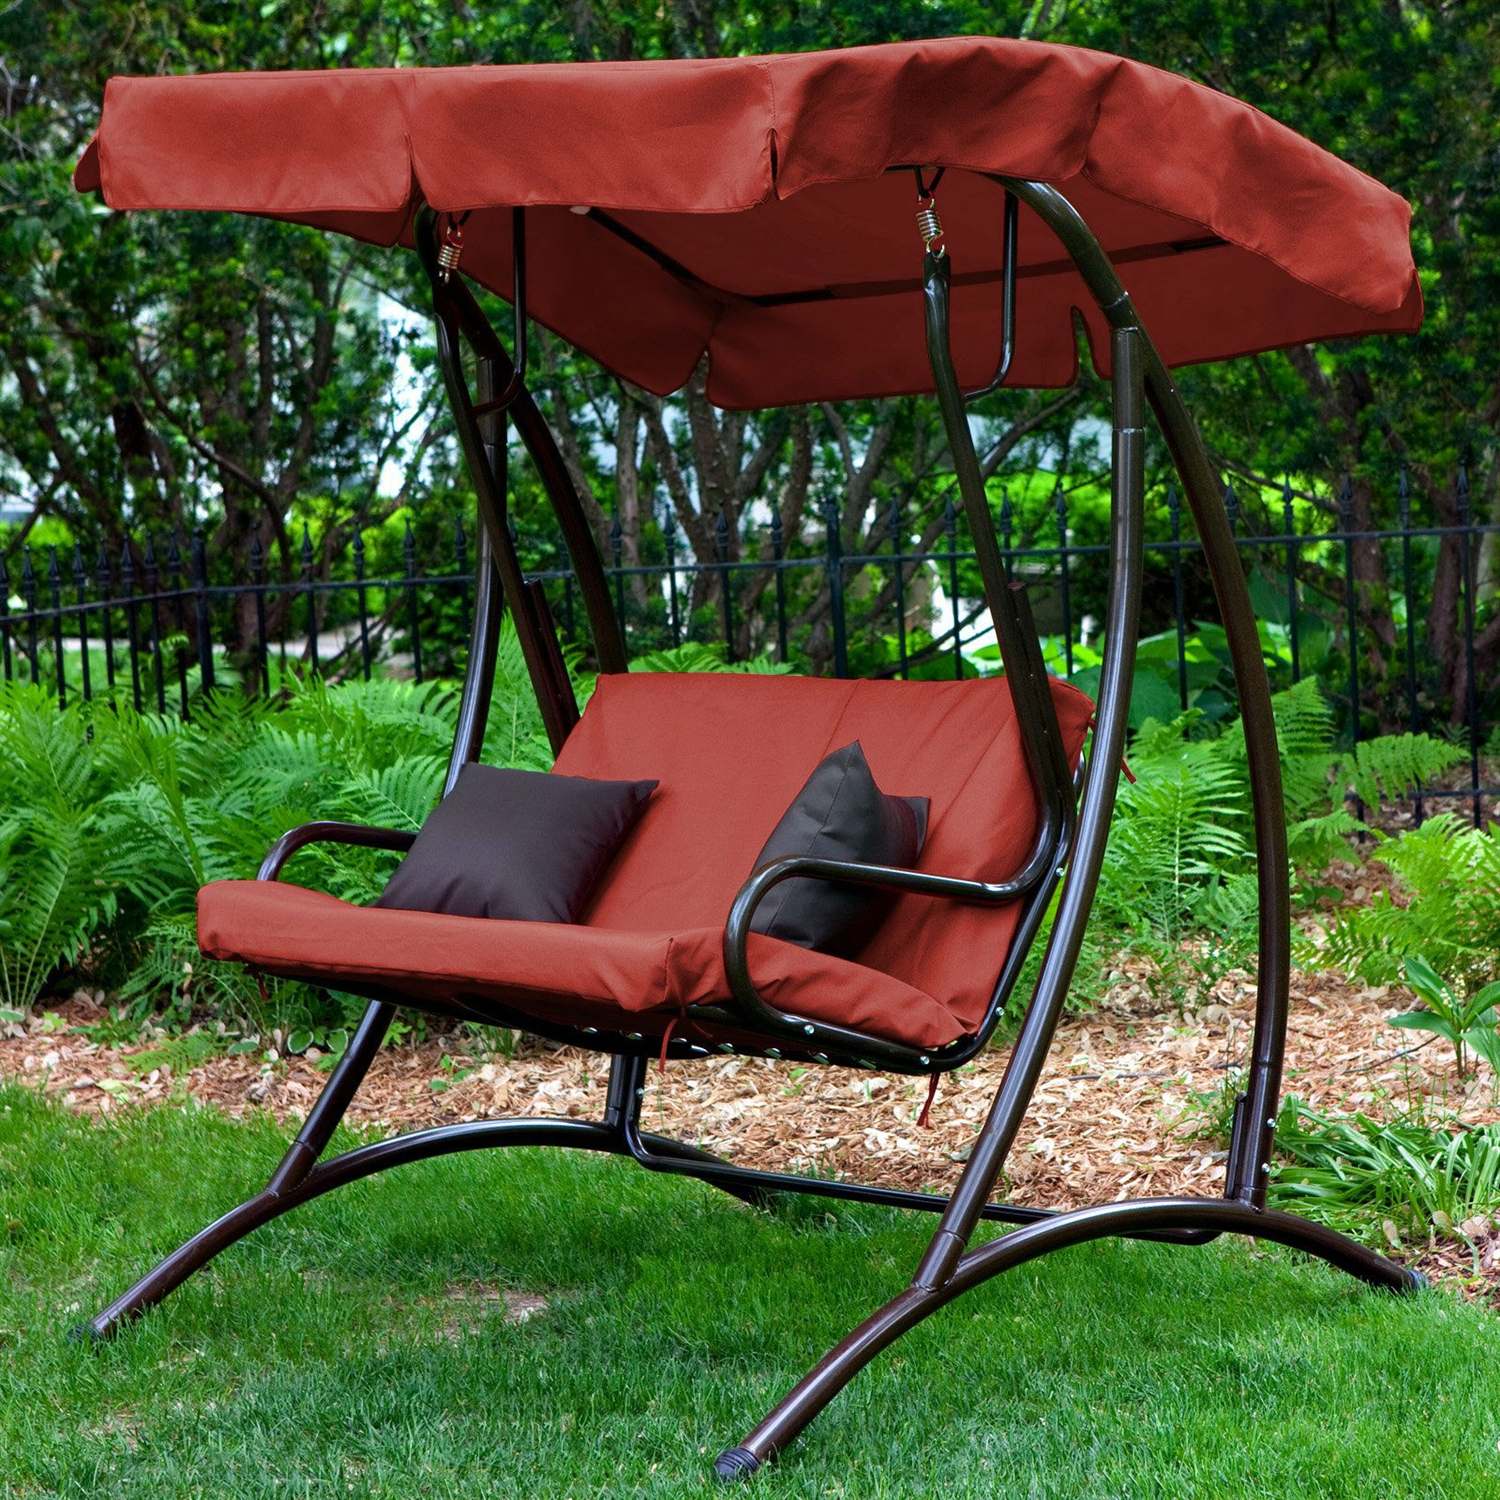 Porch Swings And Gliders Regarding Outdoor Porch Swings (View 11 of 25)